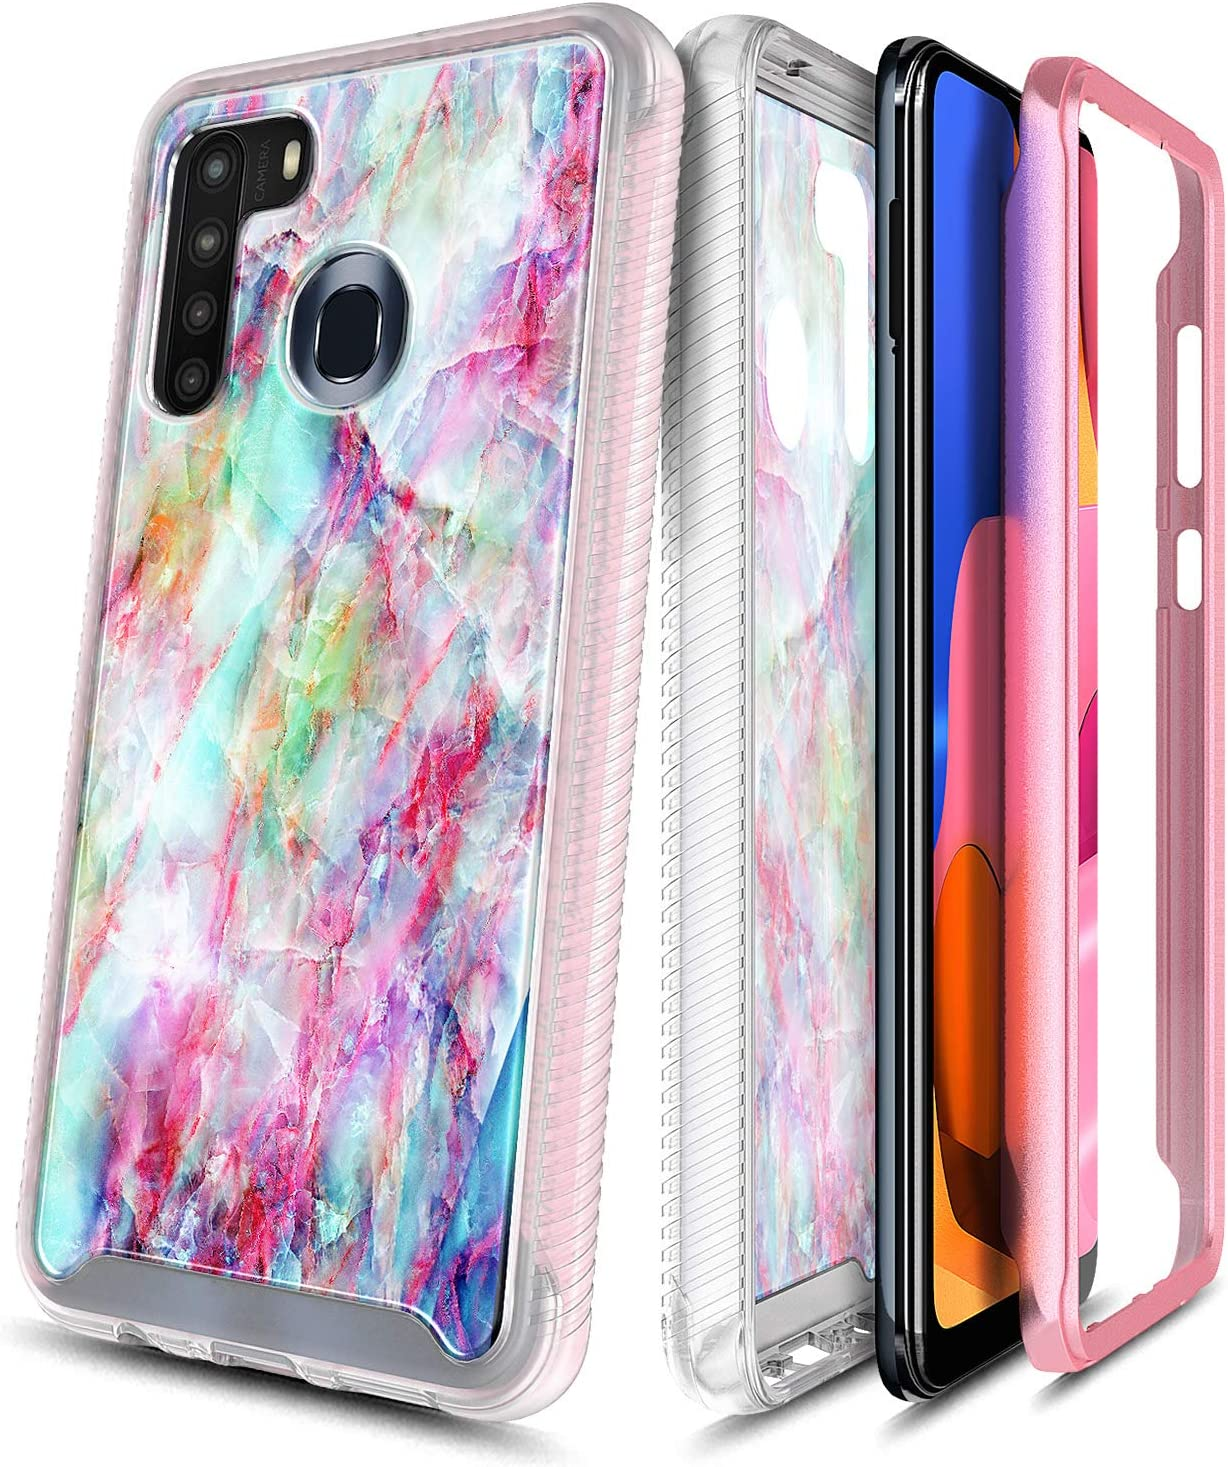 E-Began Case for Samsung Galaxy A21 (2020 Release U.S. Edition), Full-Body Protective Matte Bumper Cover with Built-in Screen Protector, Marble Design, Shockproof Rugged Durable Case -Fantasy